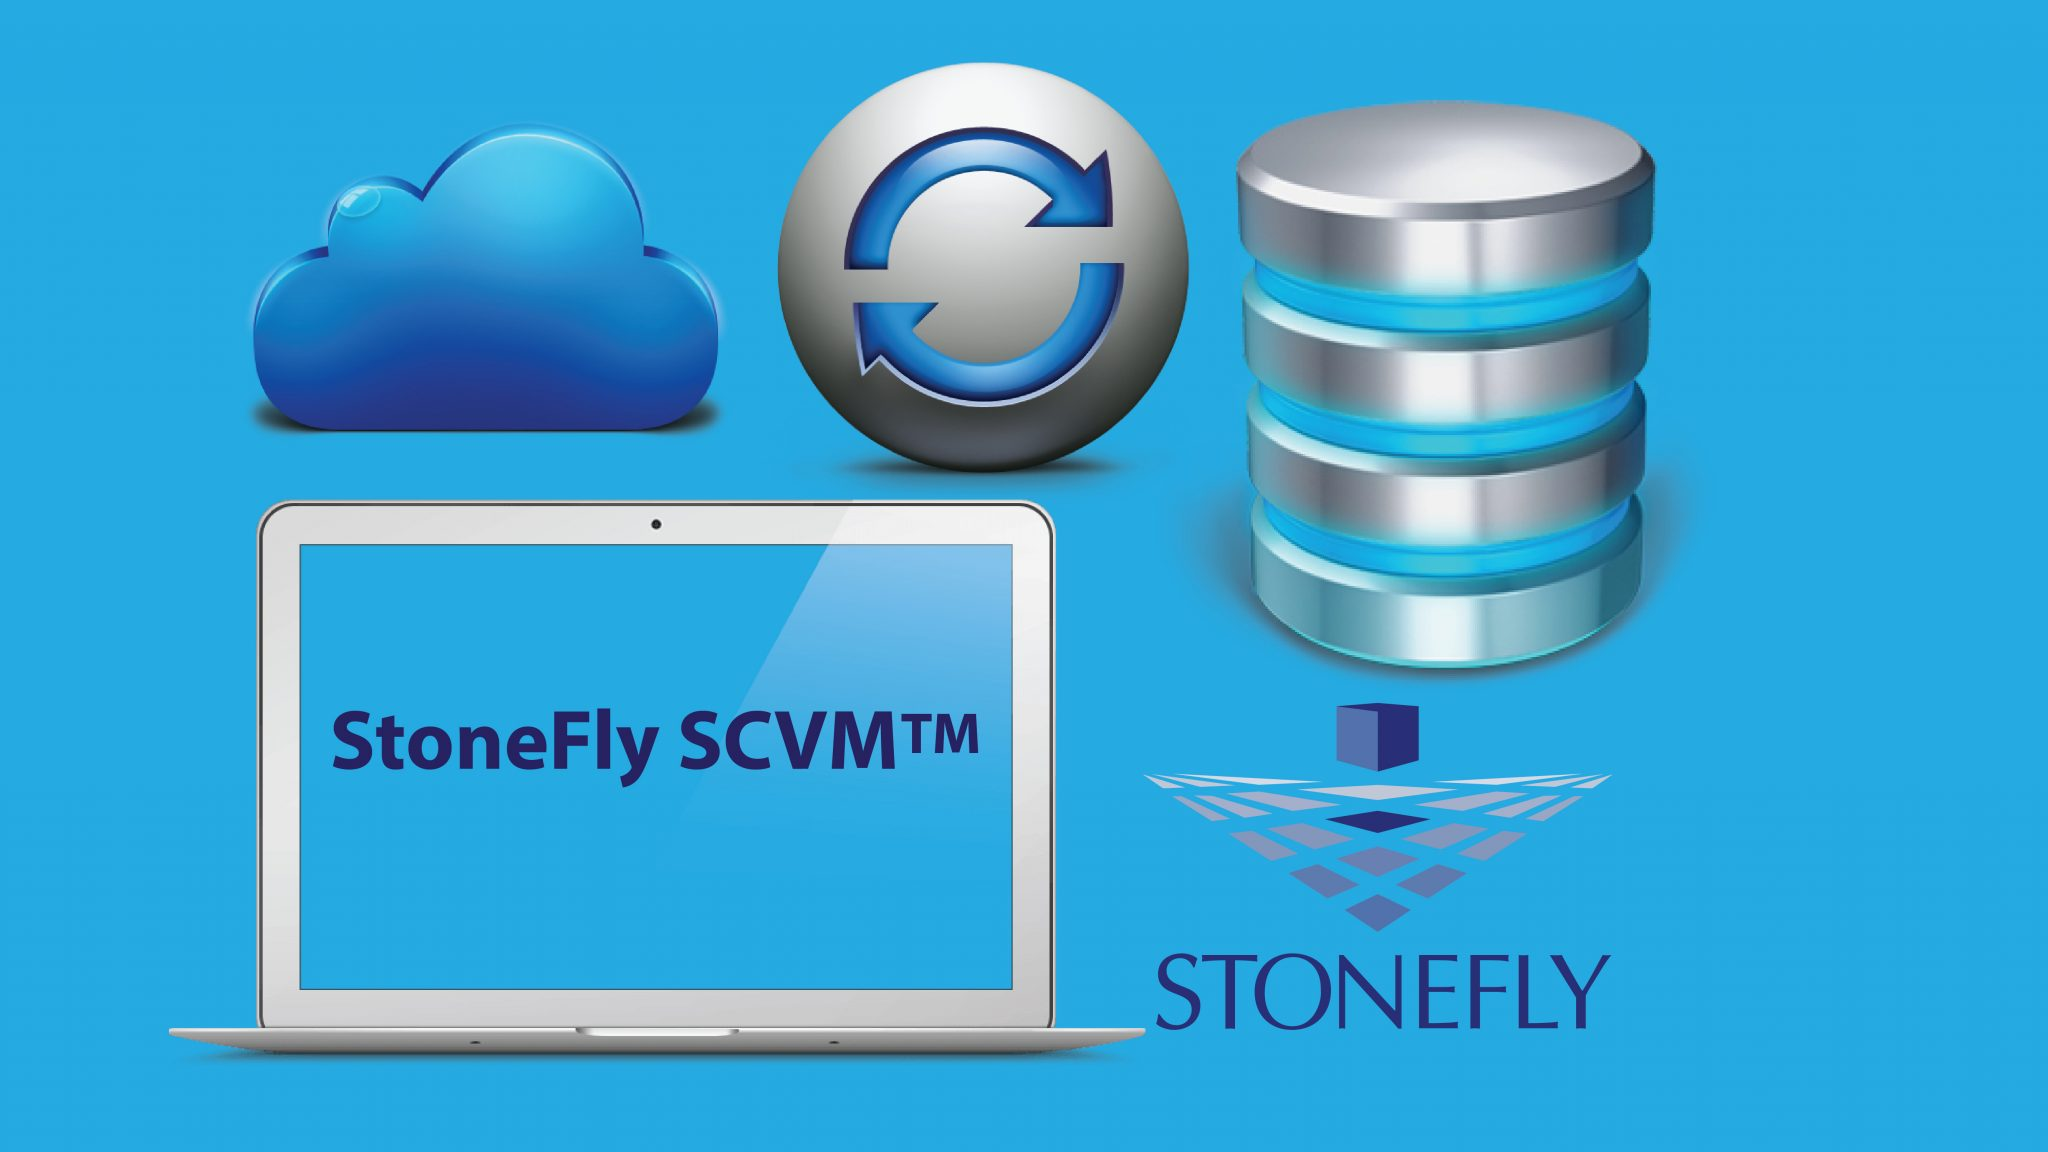 StoneFly SCVM™ ALL-IN-ONE cloud based solution for enterprises 58